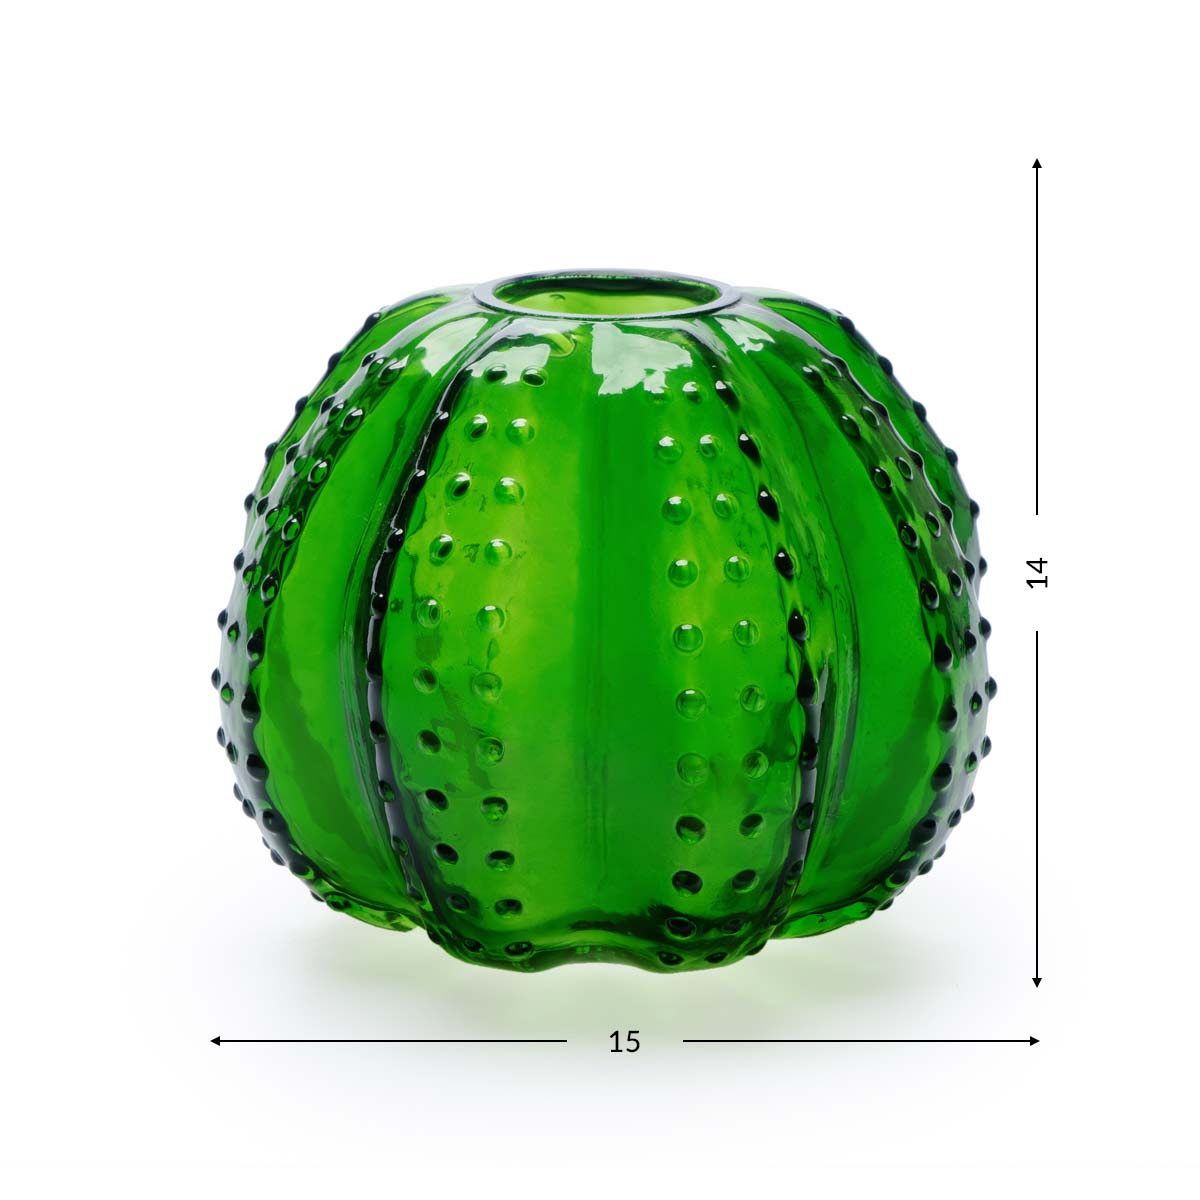 Vase Atacama, crystal, color green, shaped cactus, 14x15x15 cm